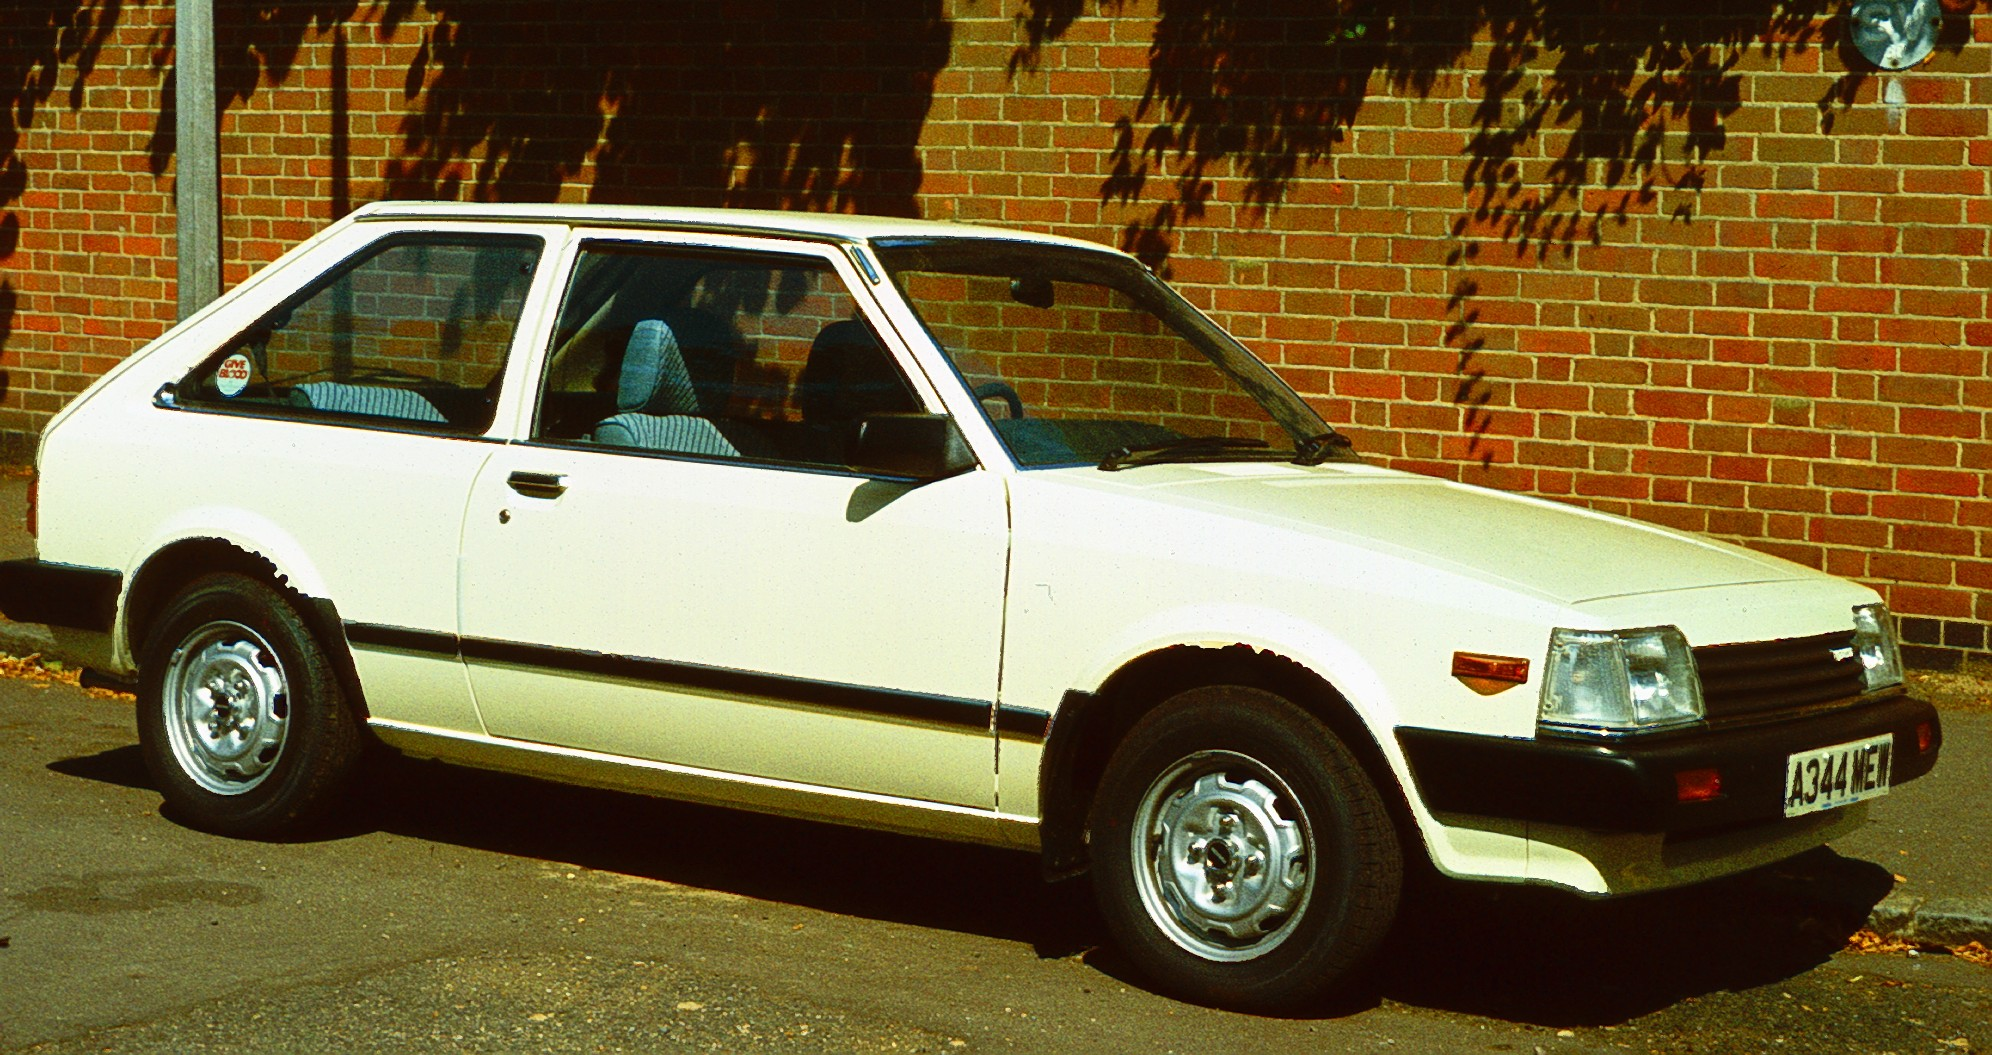 mazda 323 1994: review, amazing pictures and images – look at the car